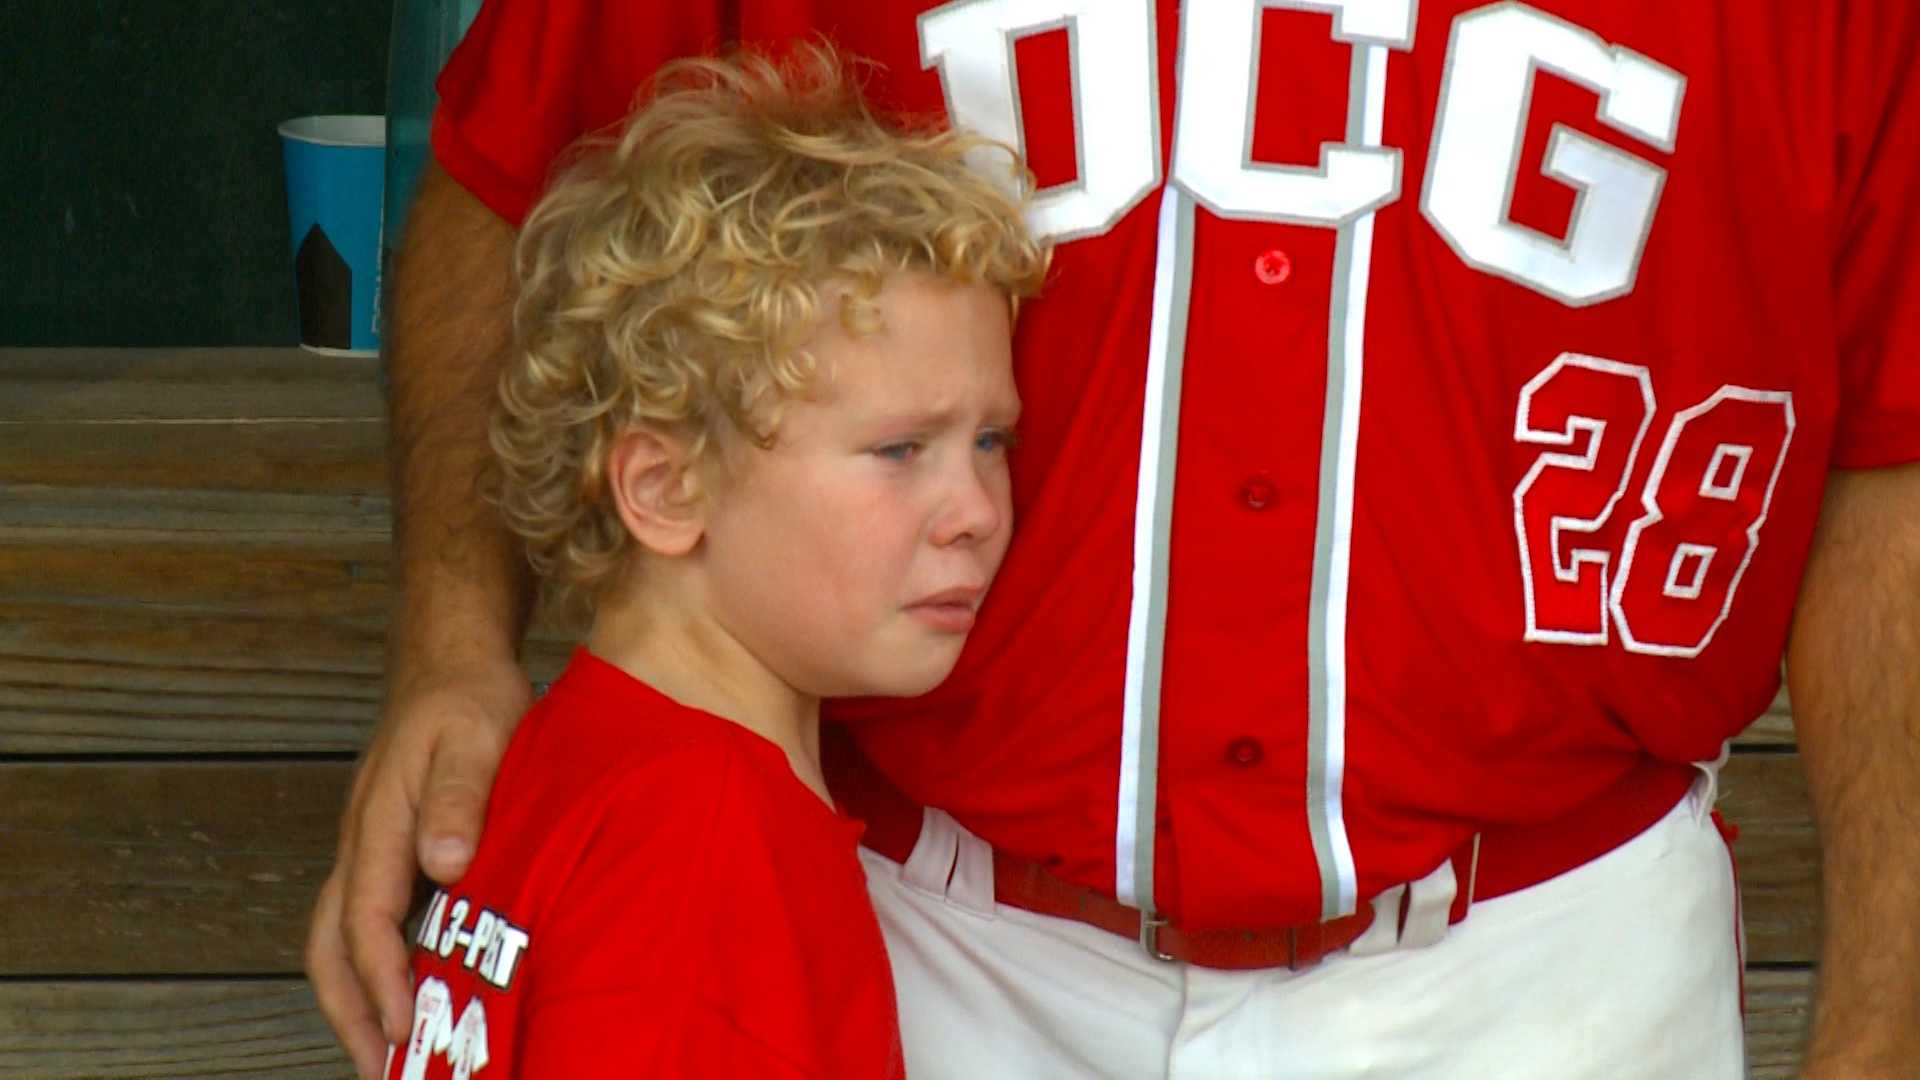 This youngster in the DCG dugout could only watch as his Mustangs came painfully close to a title.